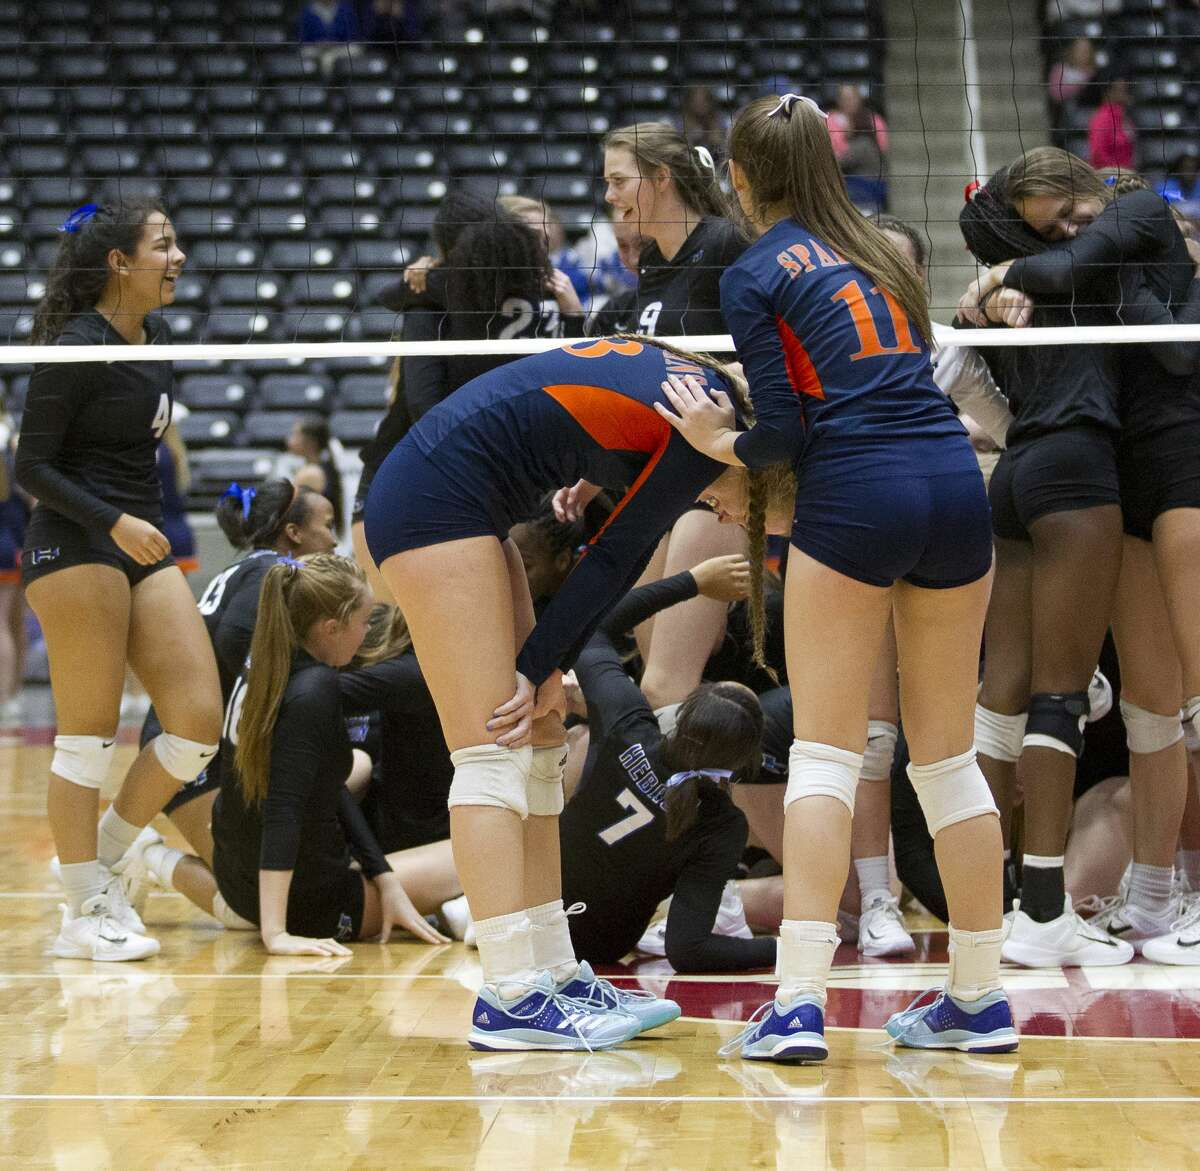 Katy Seven Lakes players react after being swept in straight sets by Lewisville Hebron in the Class 6A state championship at the Curtis Culwell Center, Saturday, Nov. 18, 2017, in Garland.